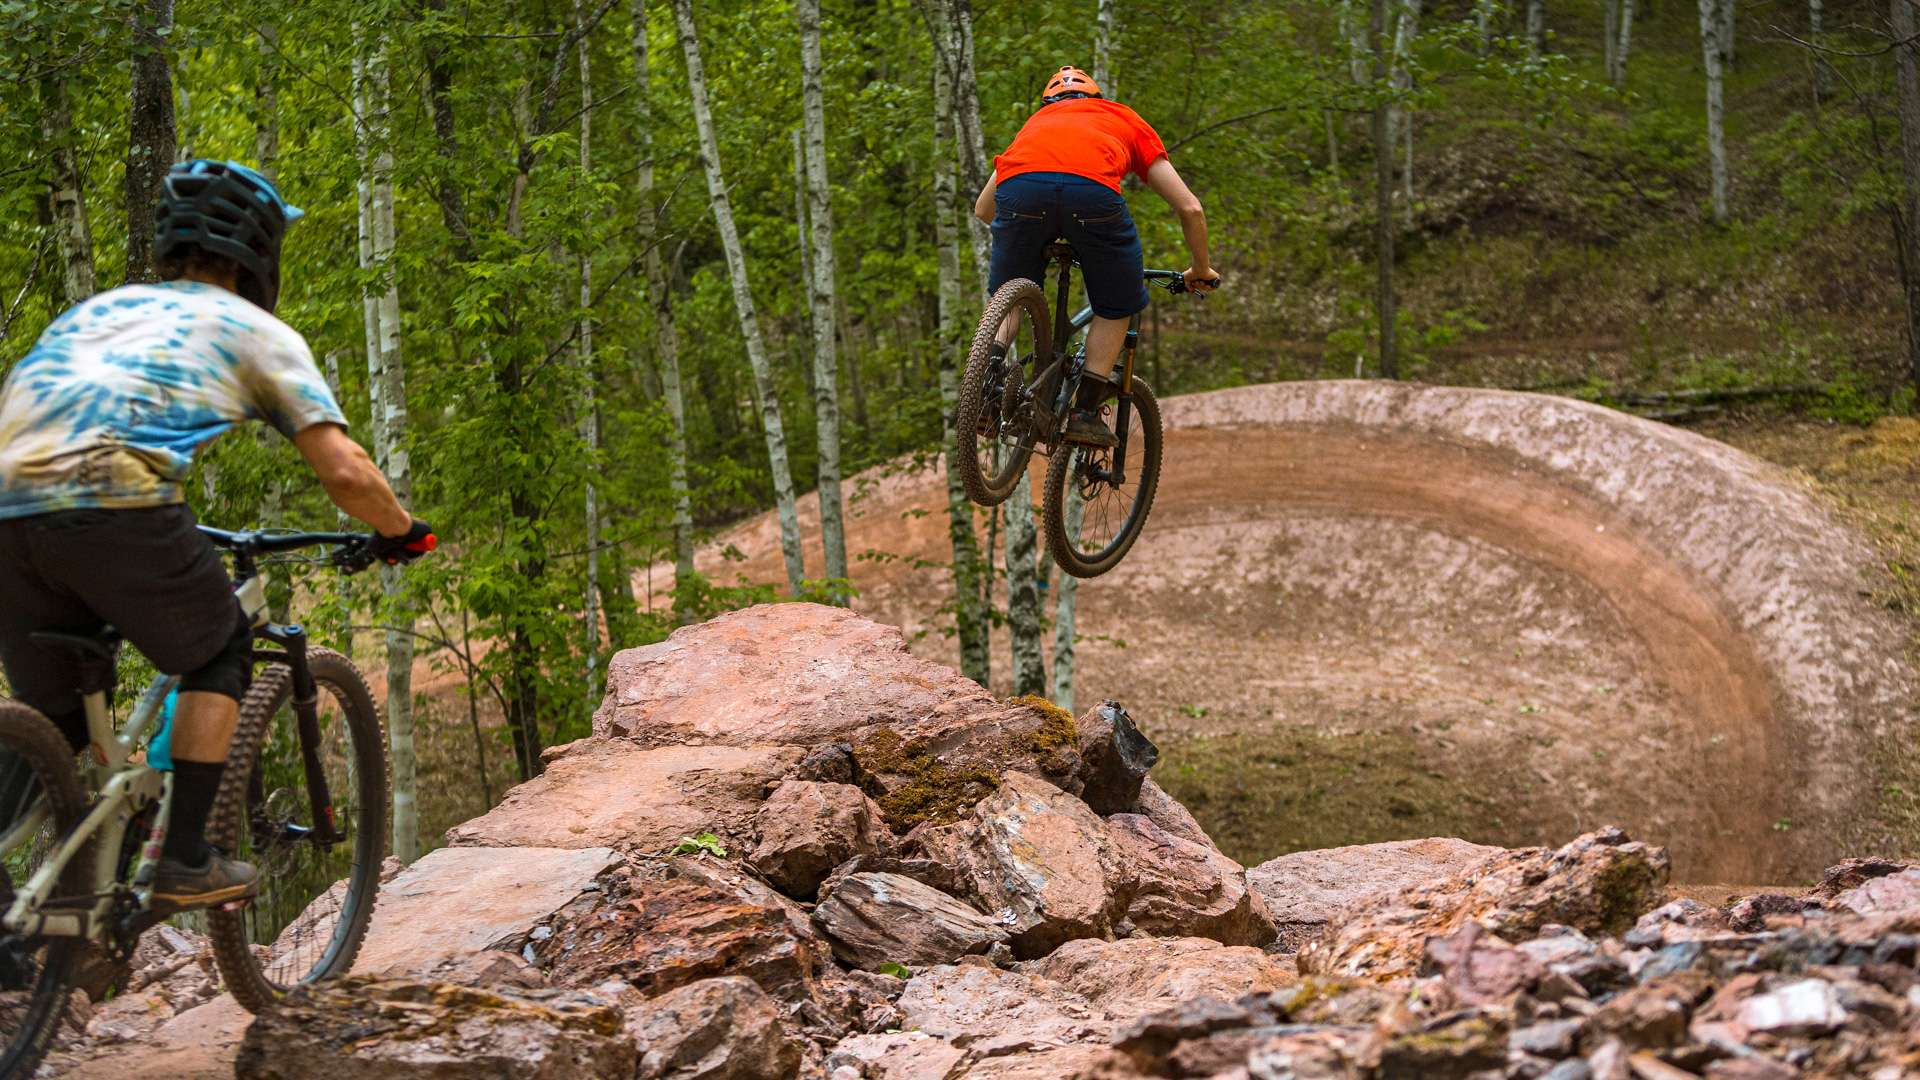 Mountain bikers ride a difficult and rocky trail